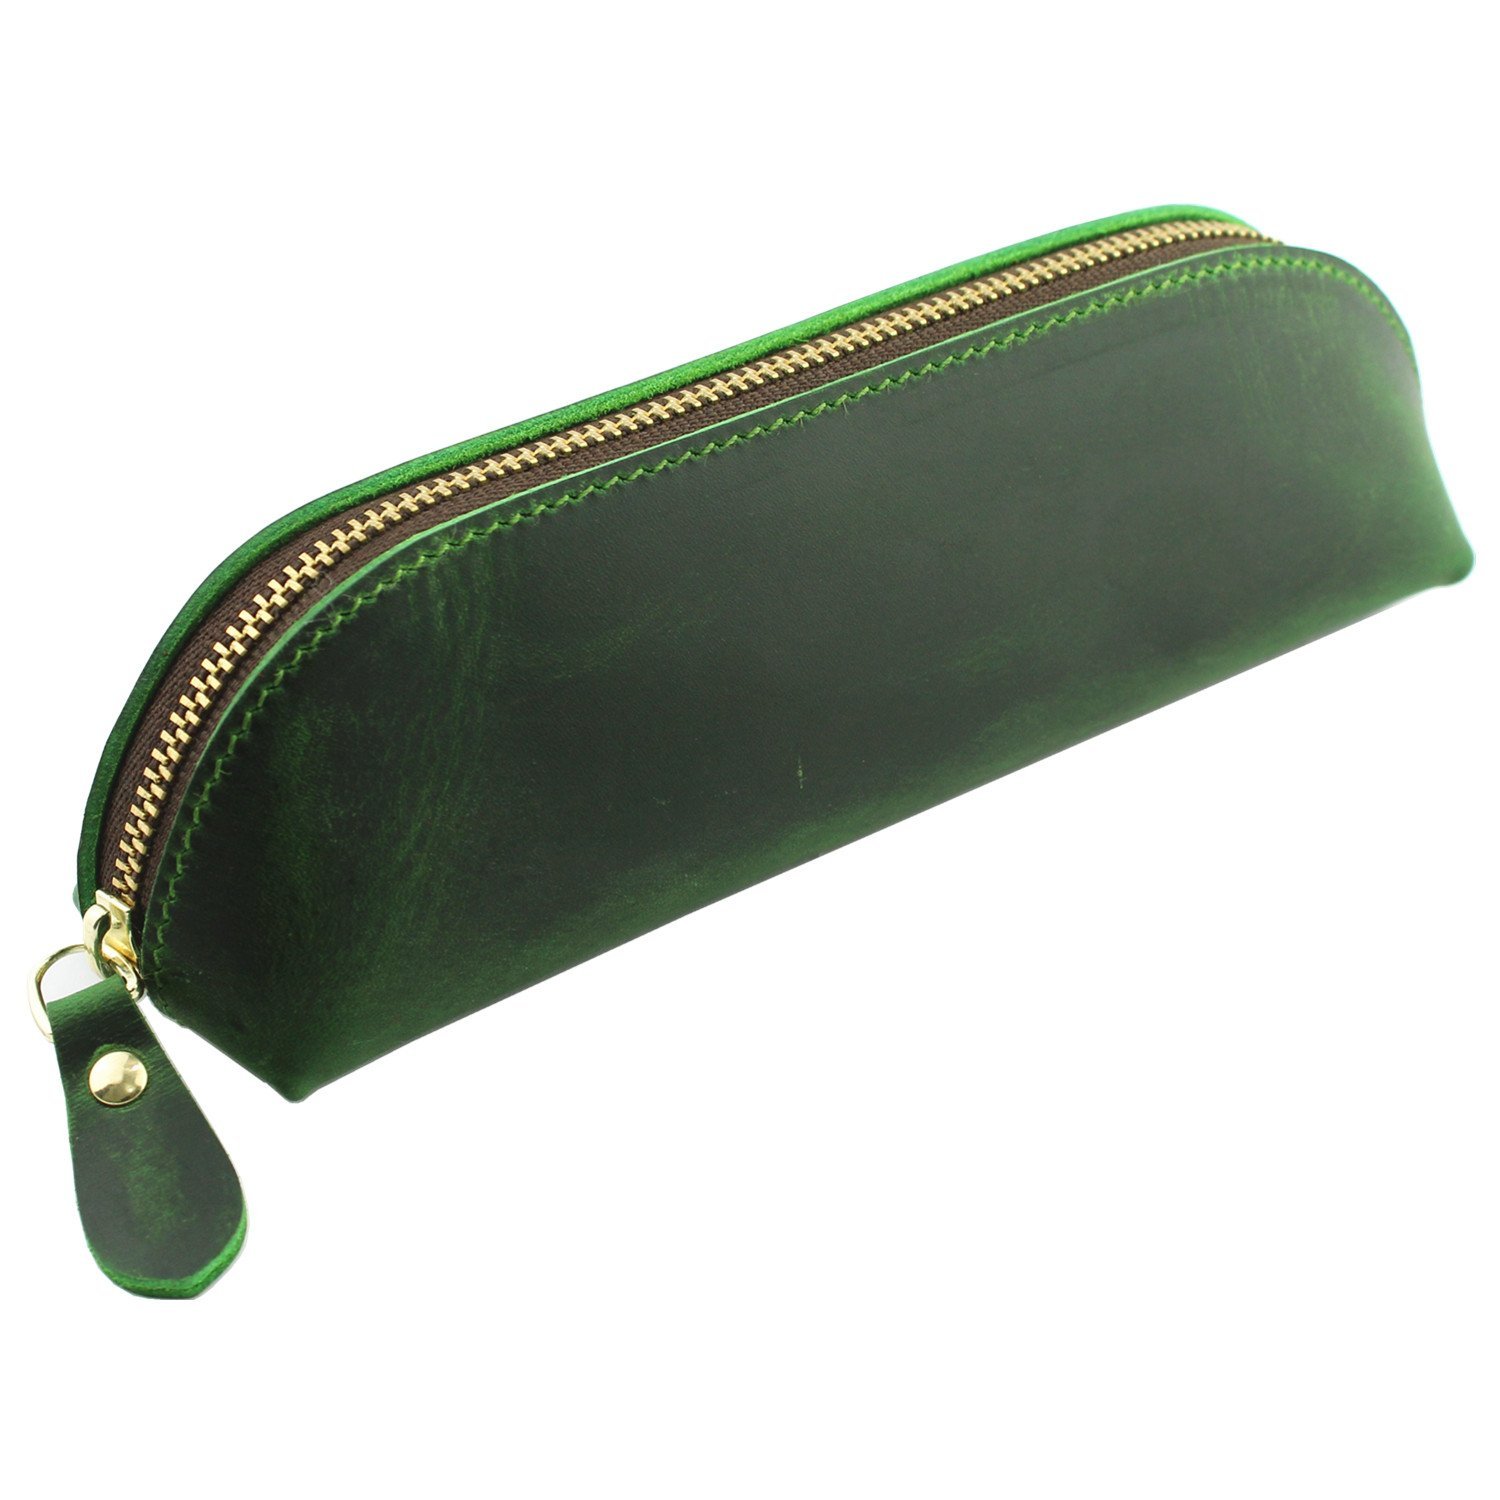 LXFF Handmade Leather Zipper Pen Pencil Pouch Case Holder Bag for College School Office Business Work Vintage Green